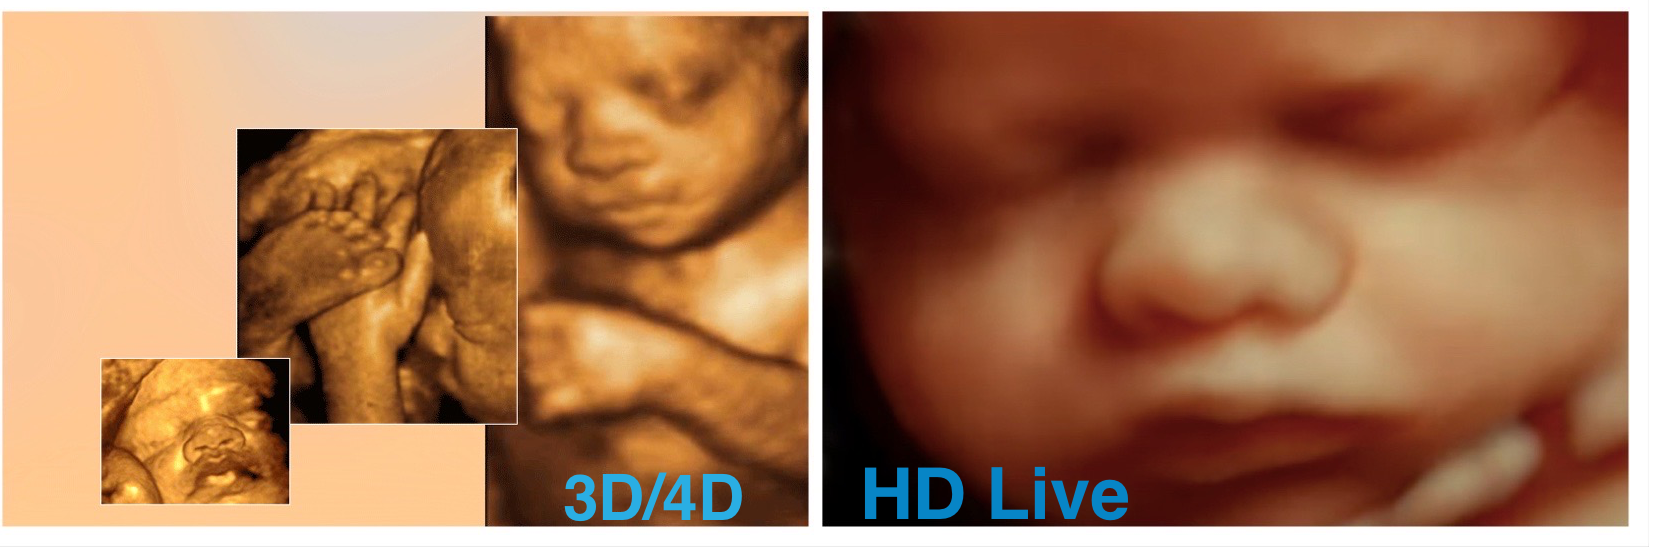 4d Ultrasound 3d Ultrasound Sonogram In Los Angeles